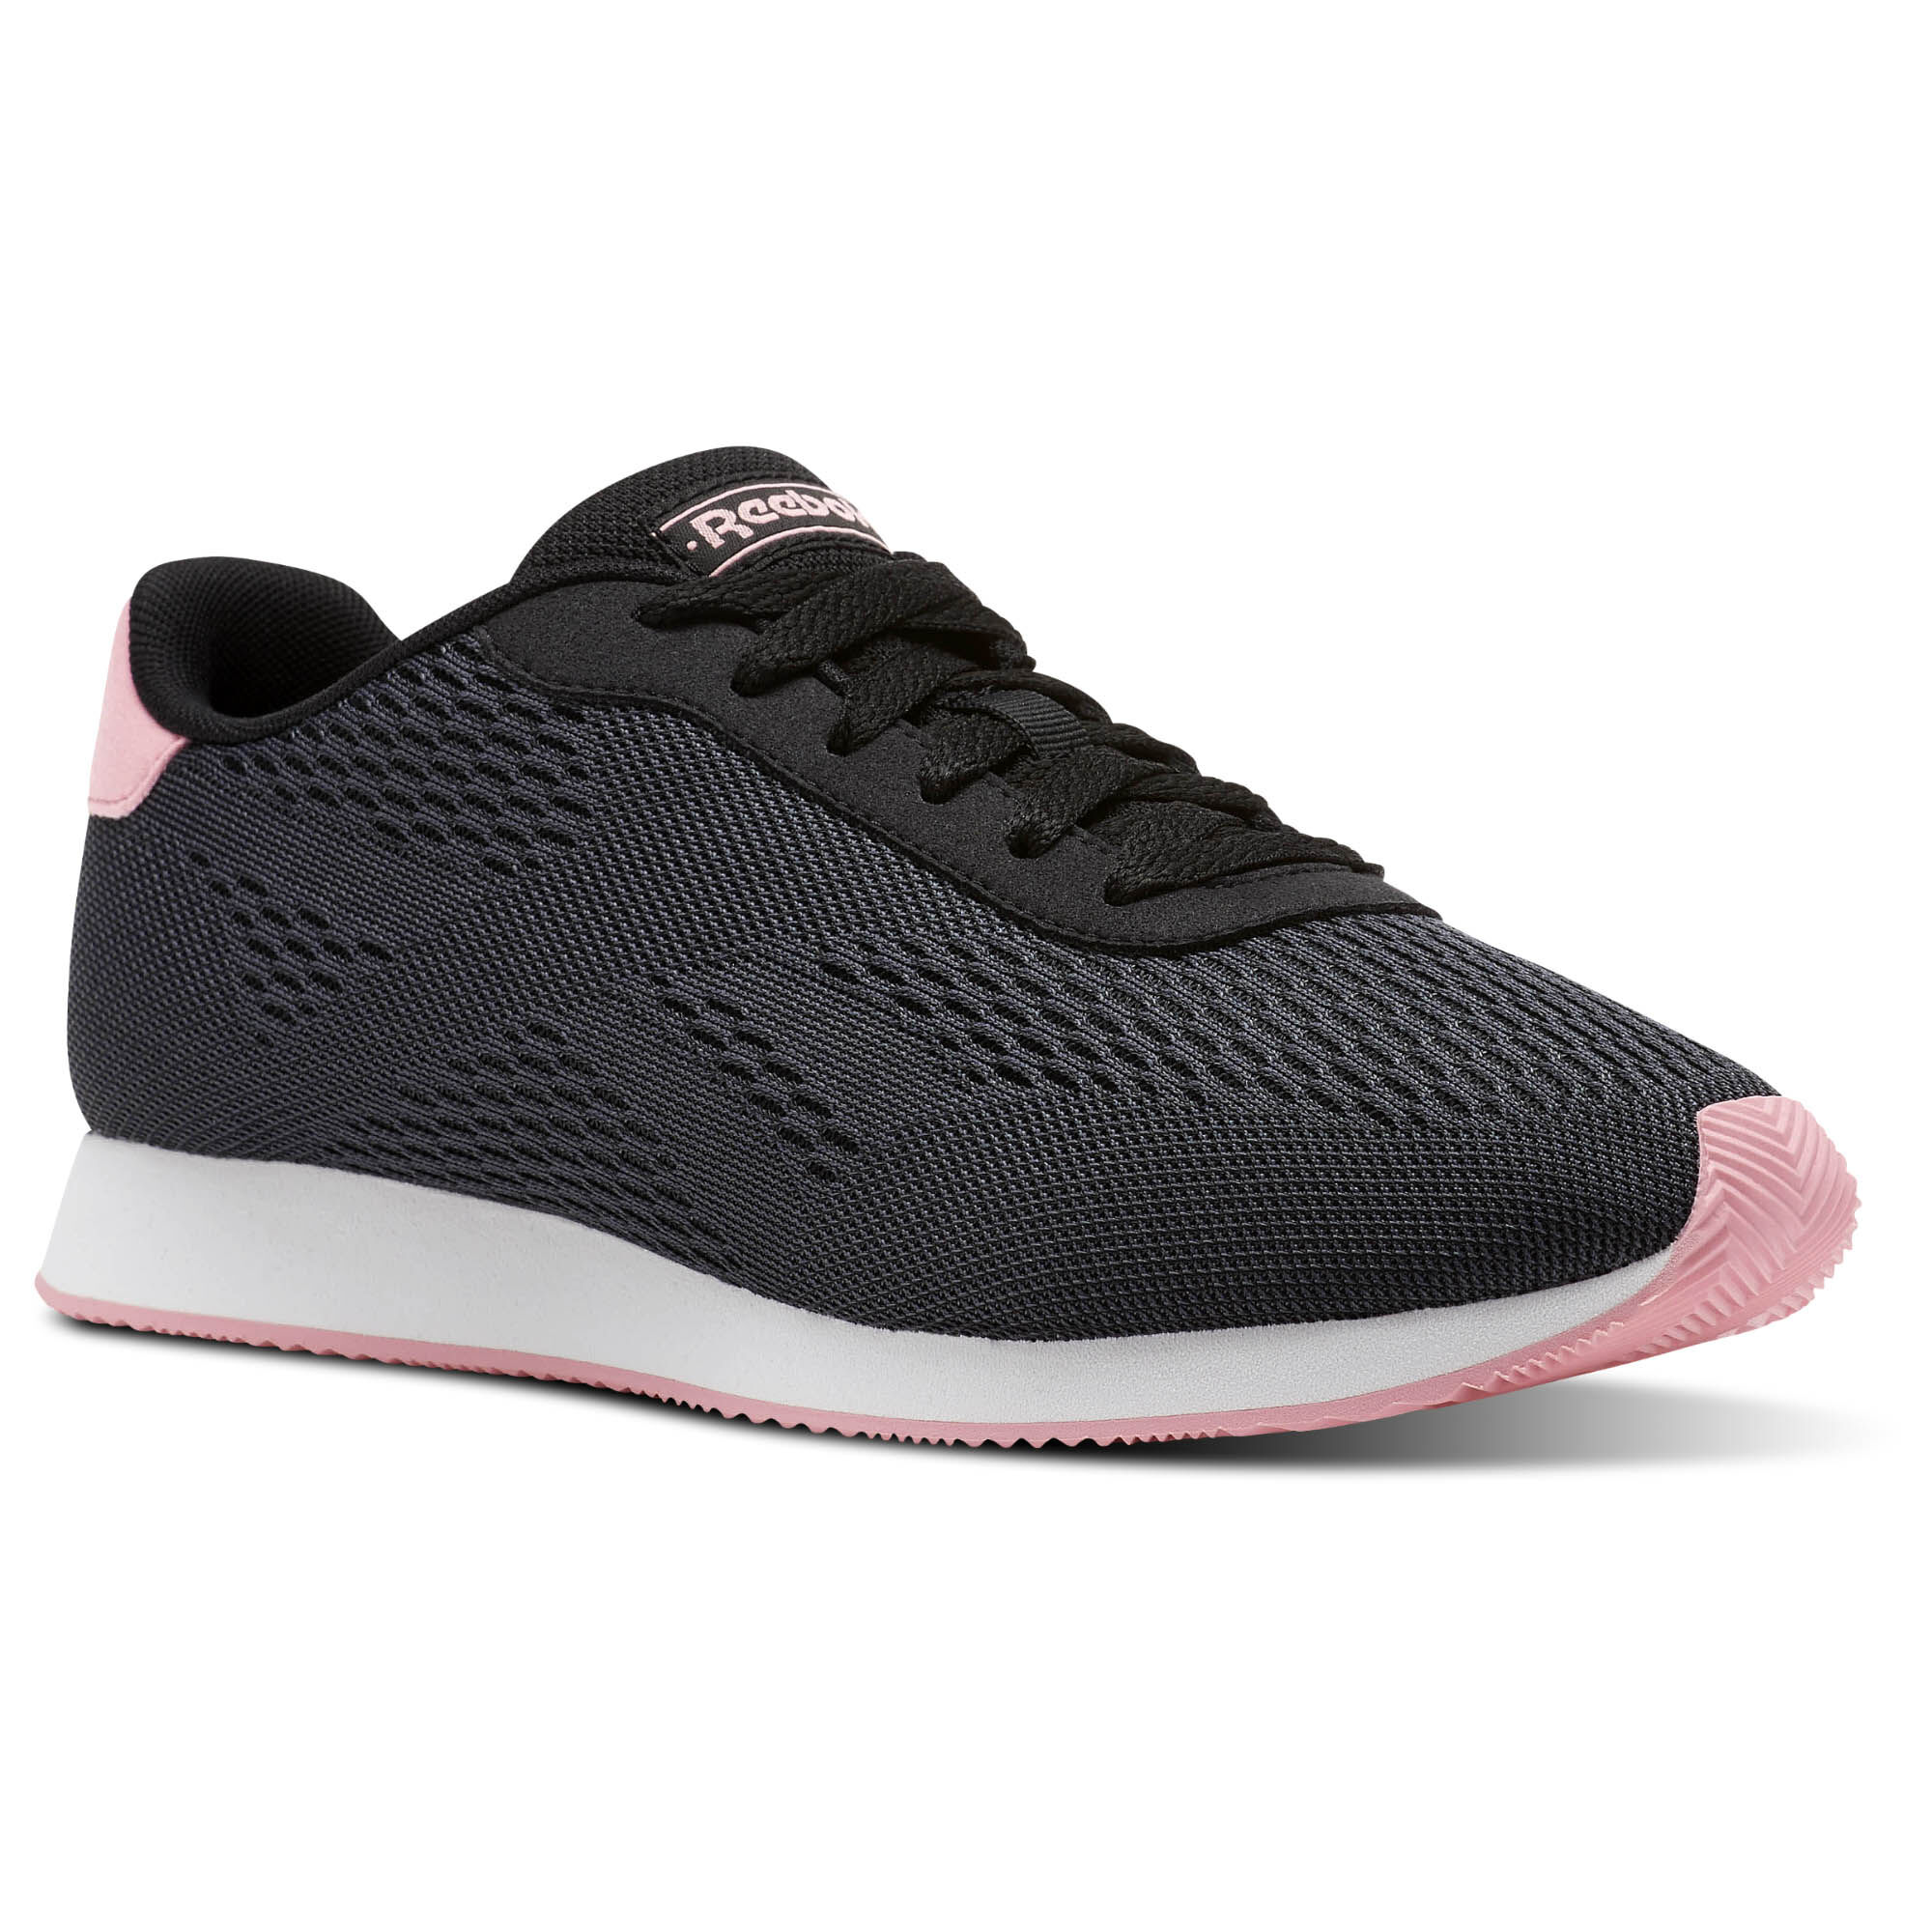 Reebok - REEBOK ROYAL CL JOG 2PX Black/Ash Grey/Squad Pink/White